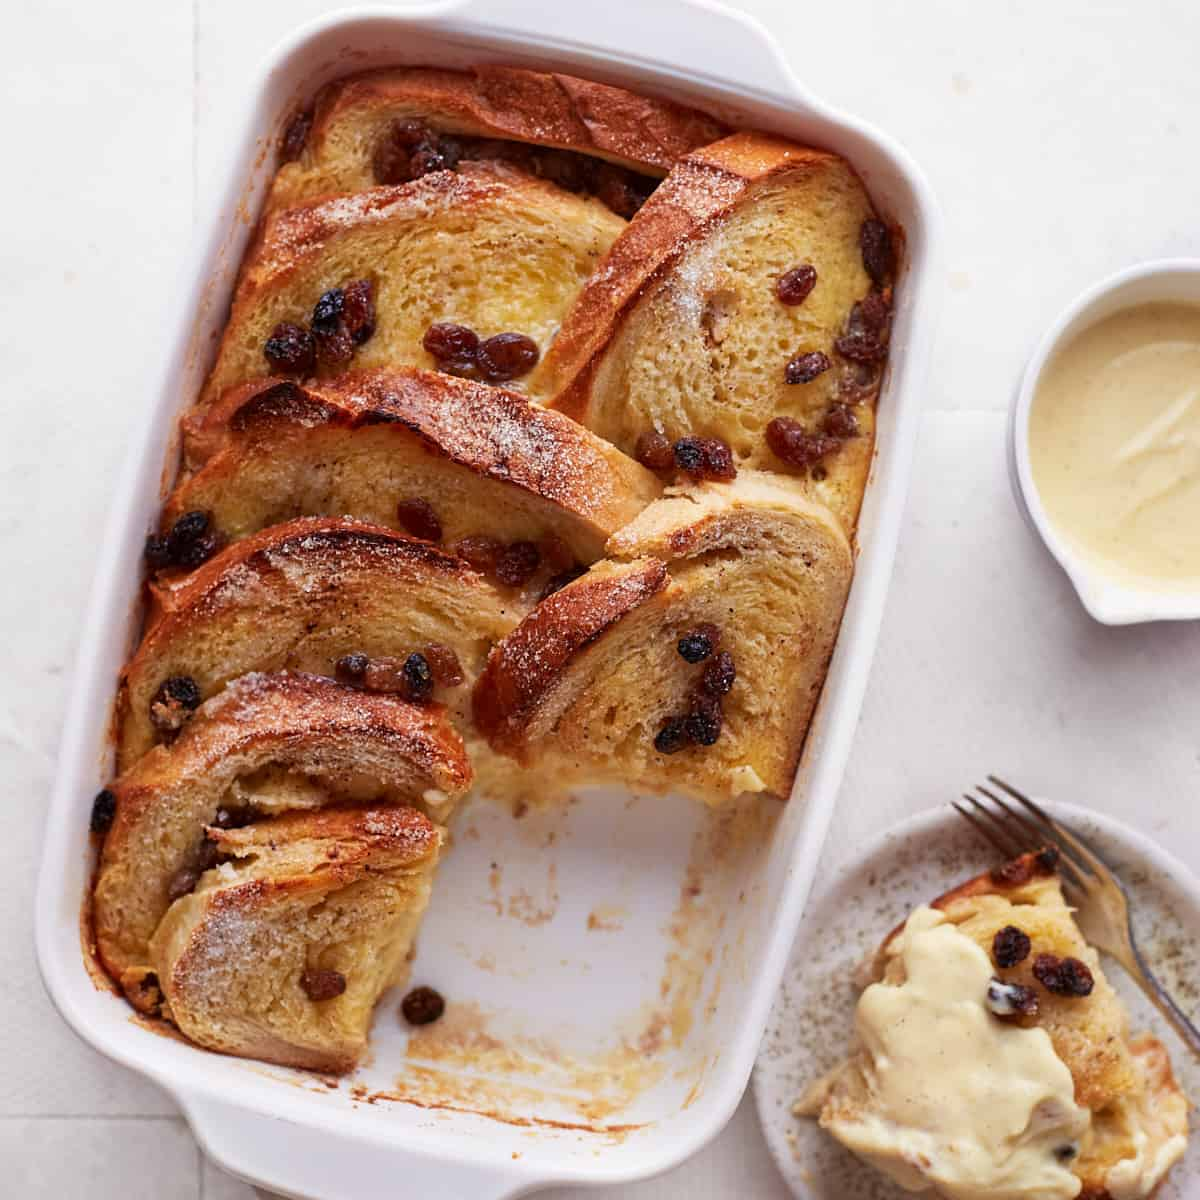 Decorative picture of baked bread pudding in a casserole from top